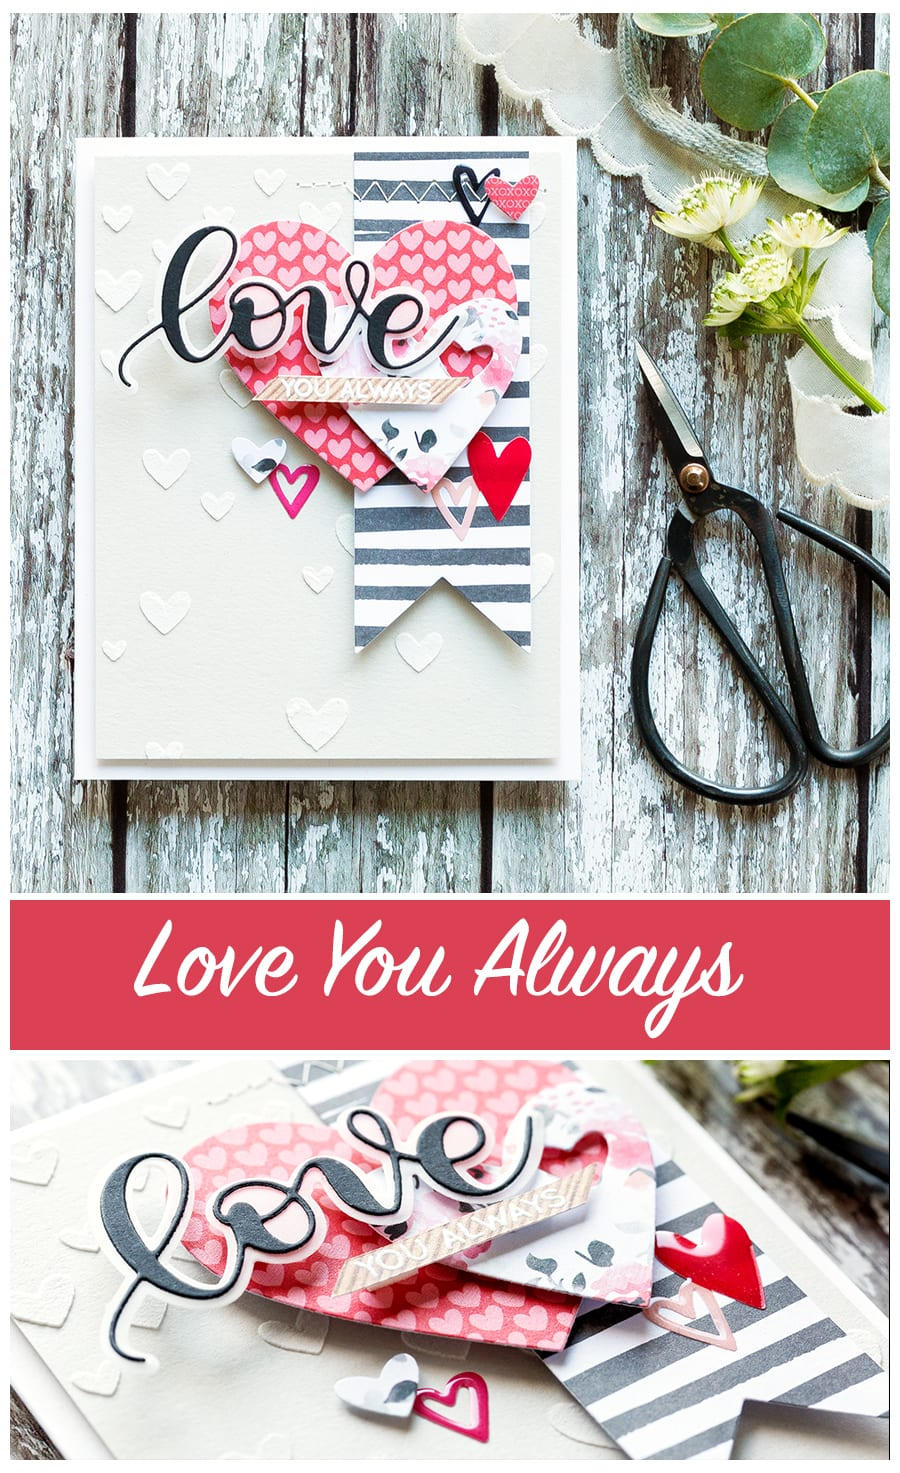 Love You Always card by Debby Hughes. Find out more about this Valentine's card by clicking on the following link: https://limedoodledesign.com/2017/01/love-you-always/